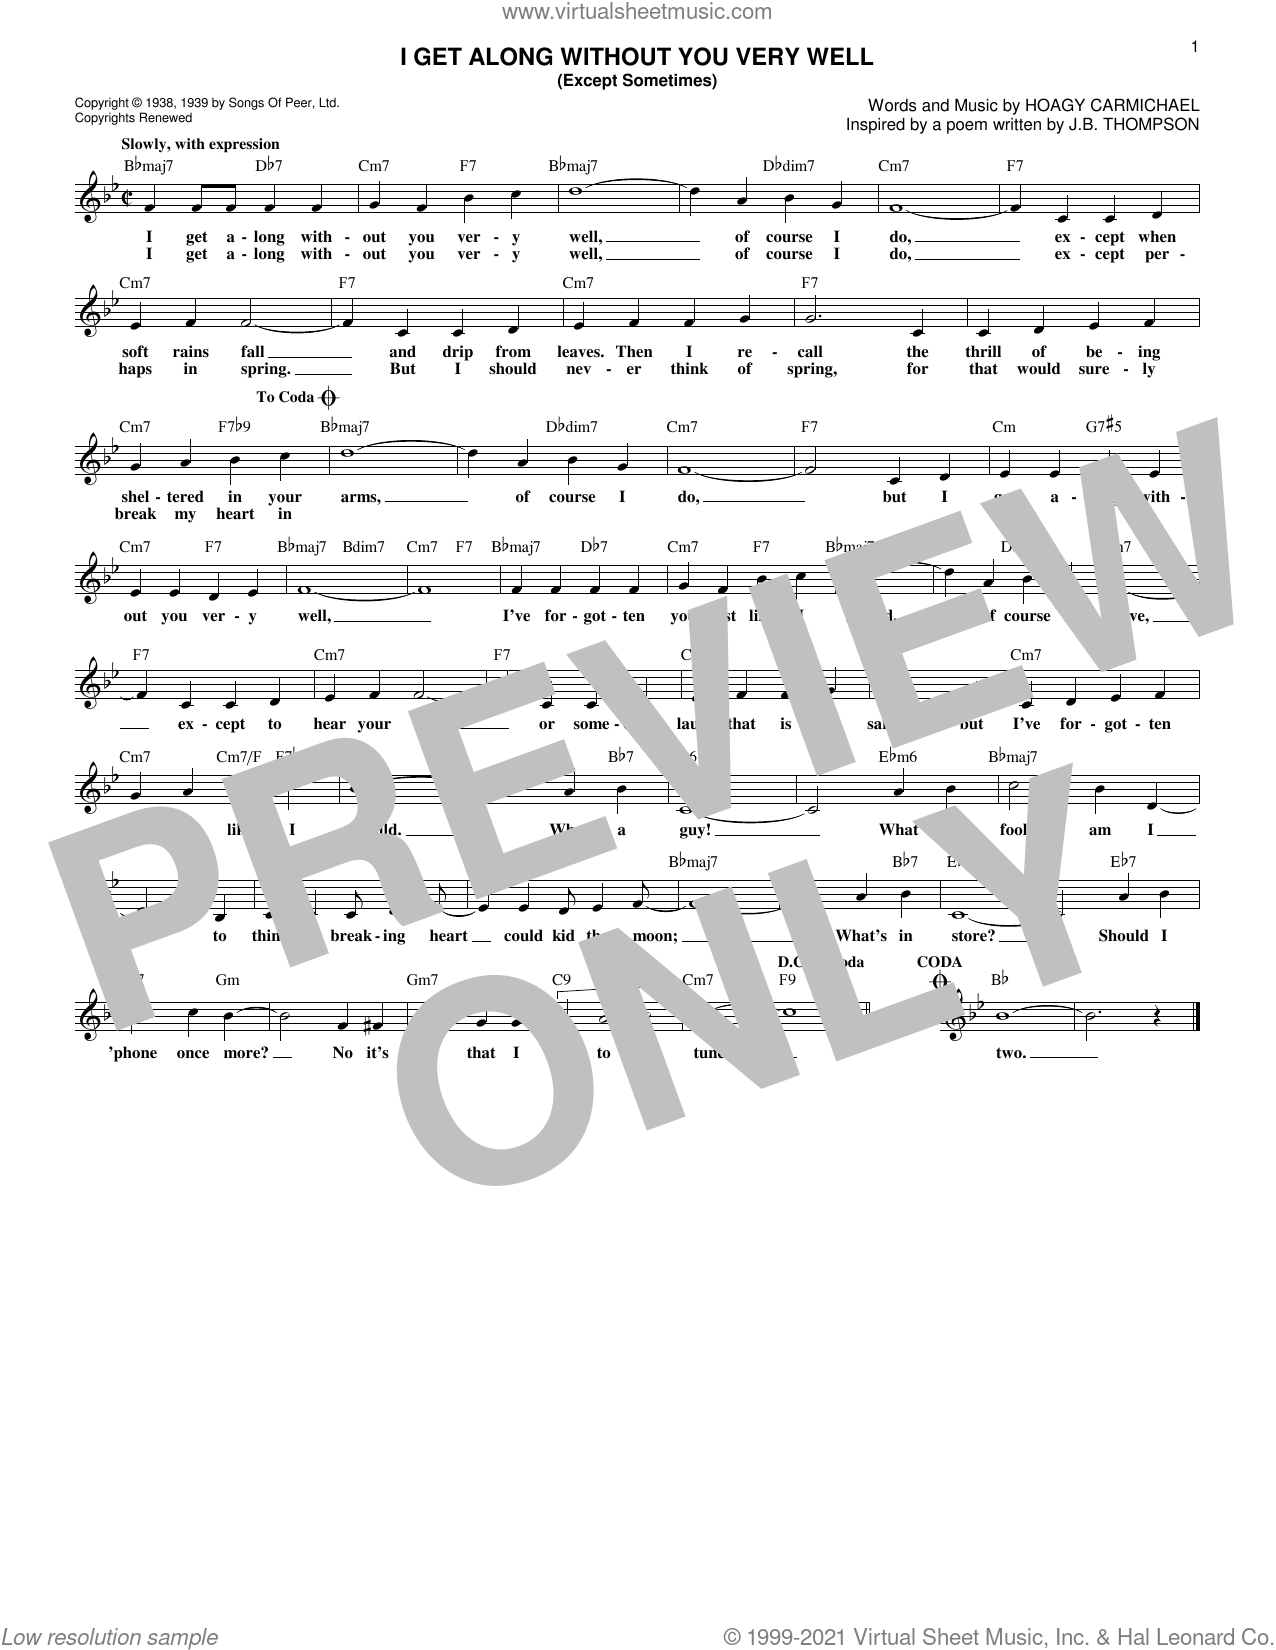 I Get Along Without You Very Well (Except Sometimes) sheet music for voice and other instruments (fake book) by Hoagy Carmichael, intermediate skill level